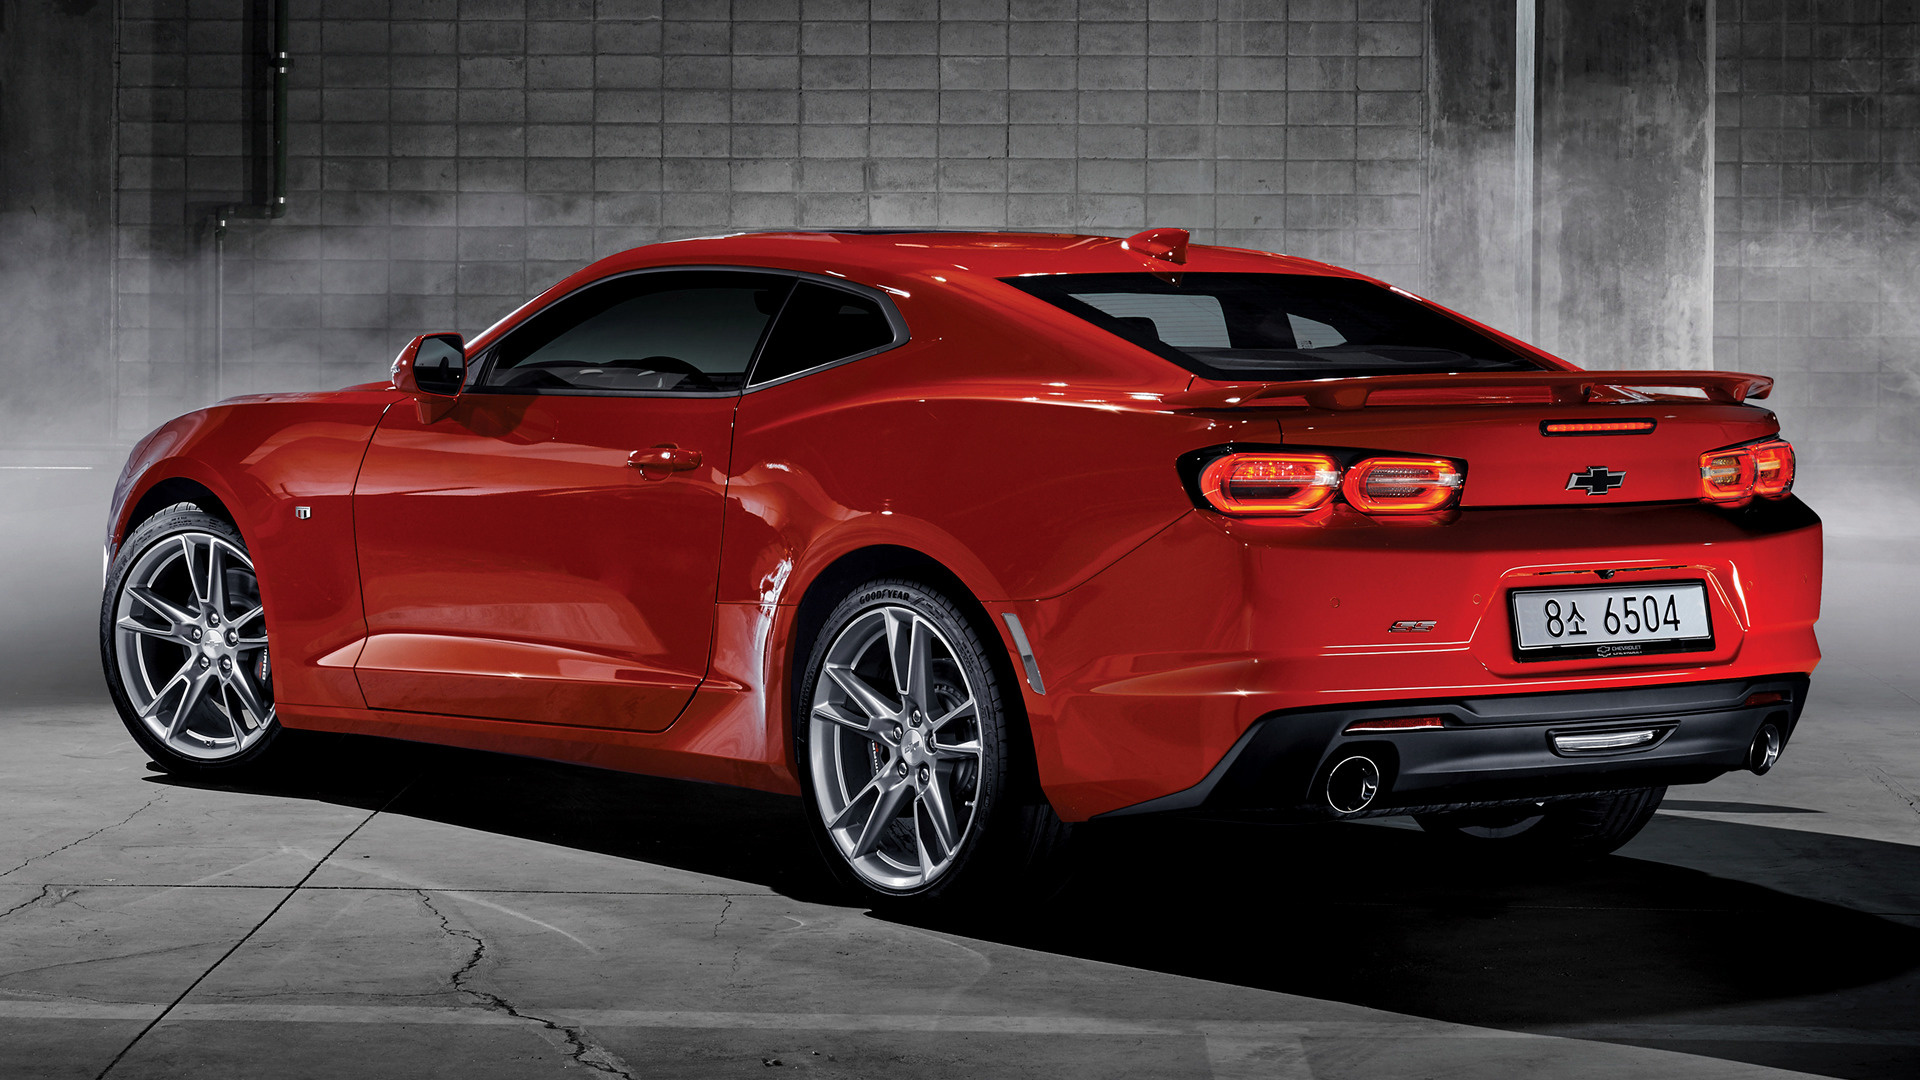 2019 Chevrolet Camaro Ss Kr Wallpapers And Hd Images